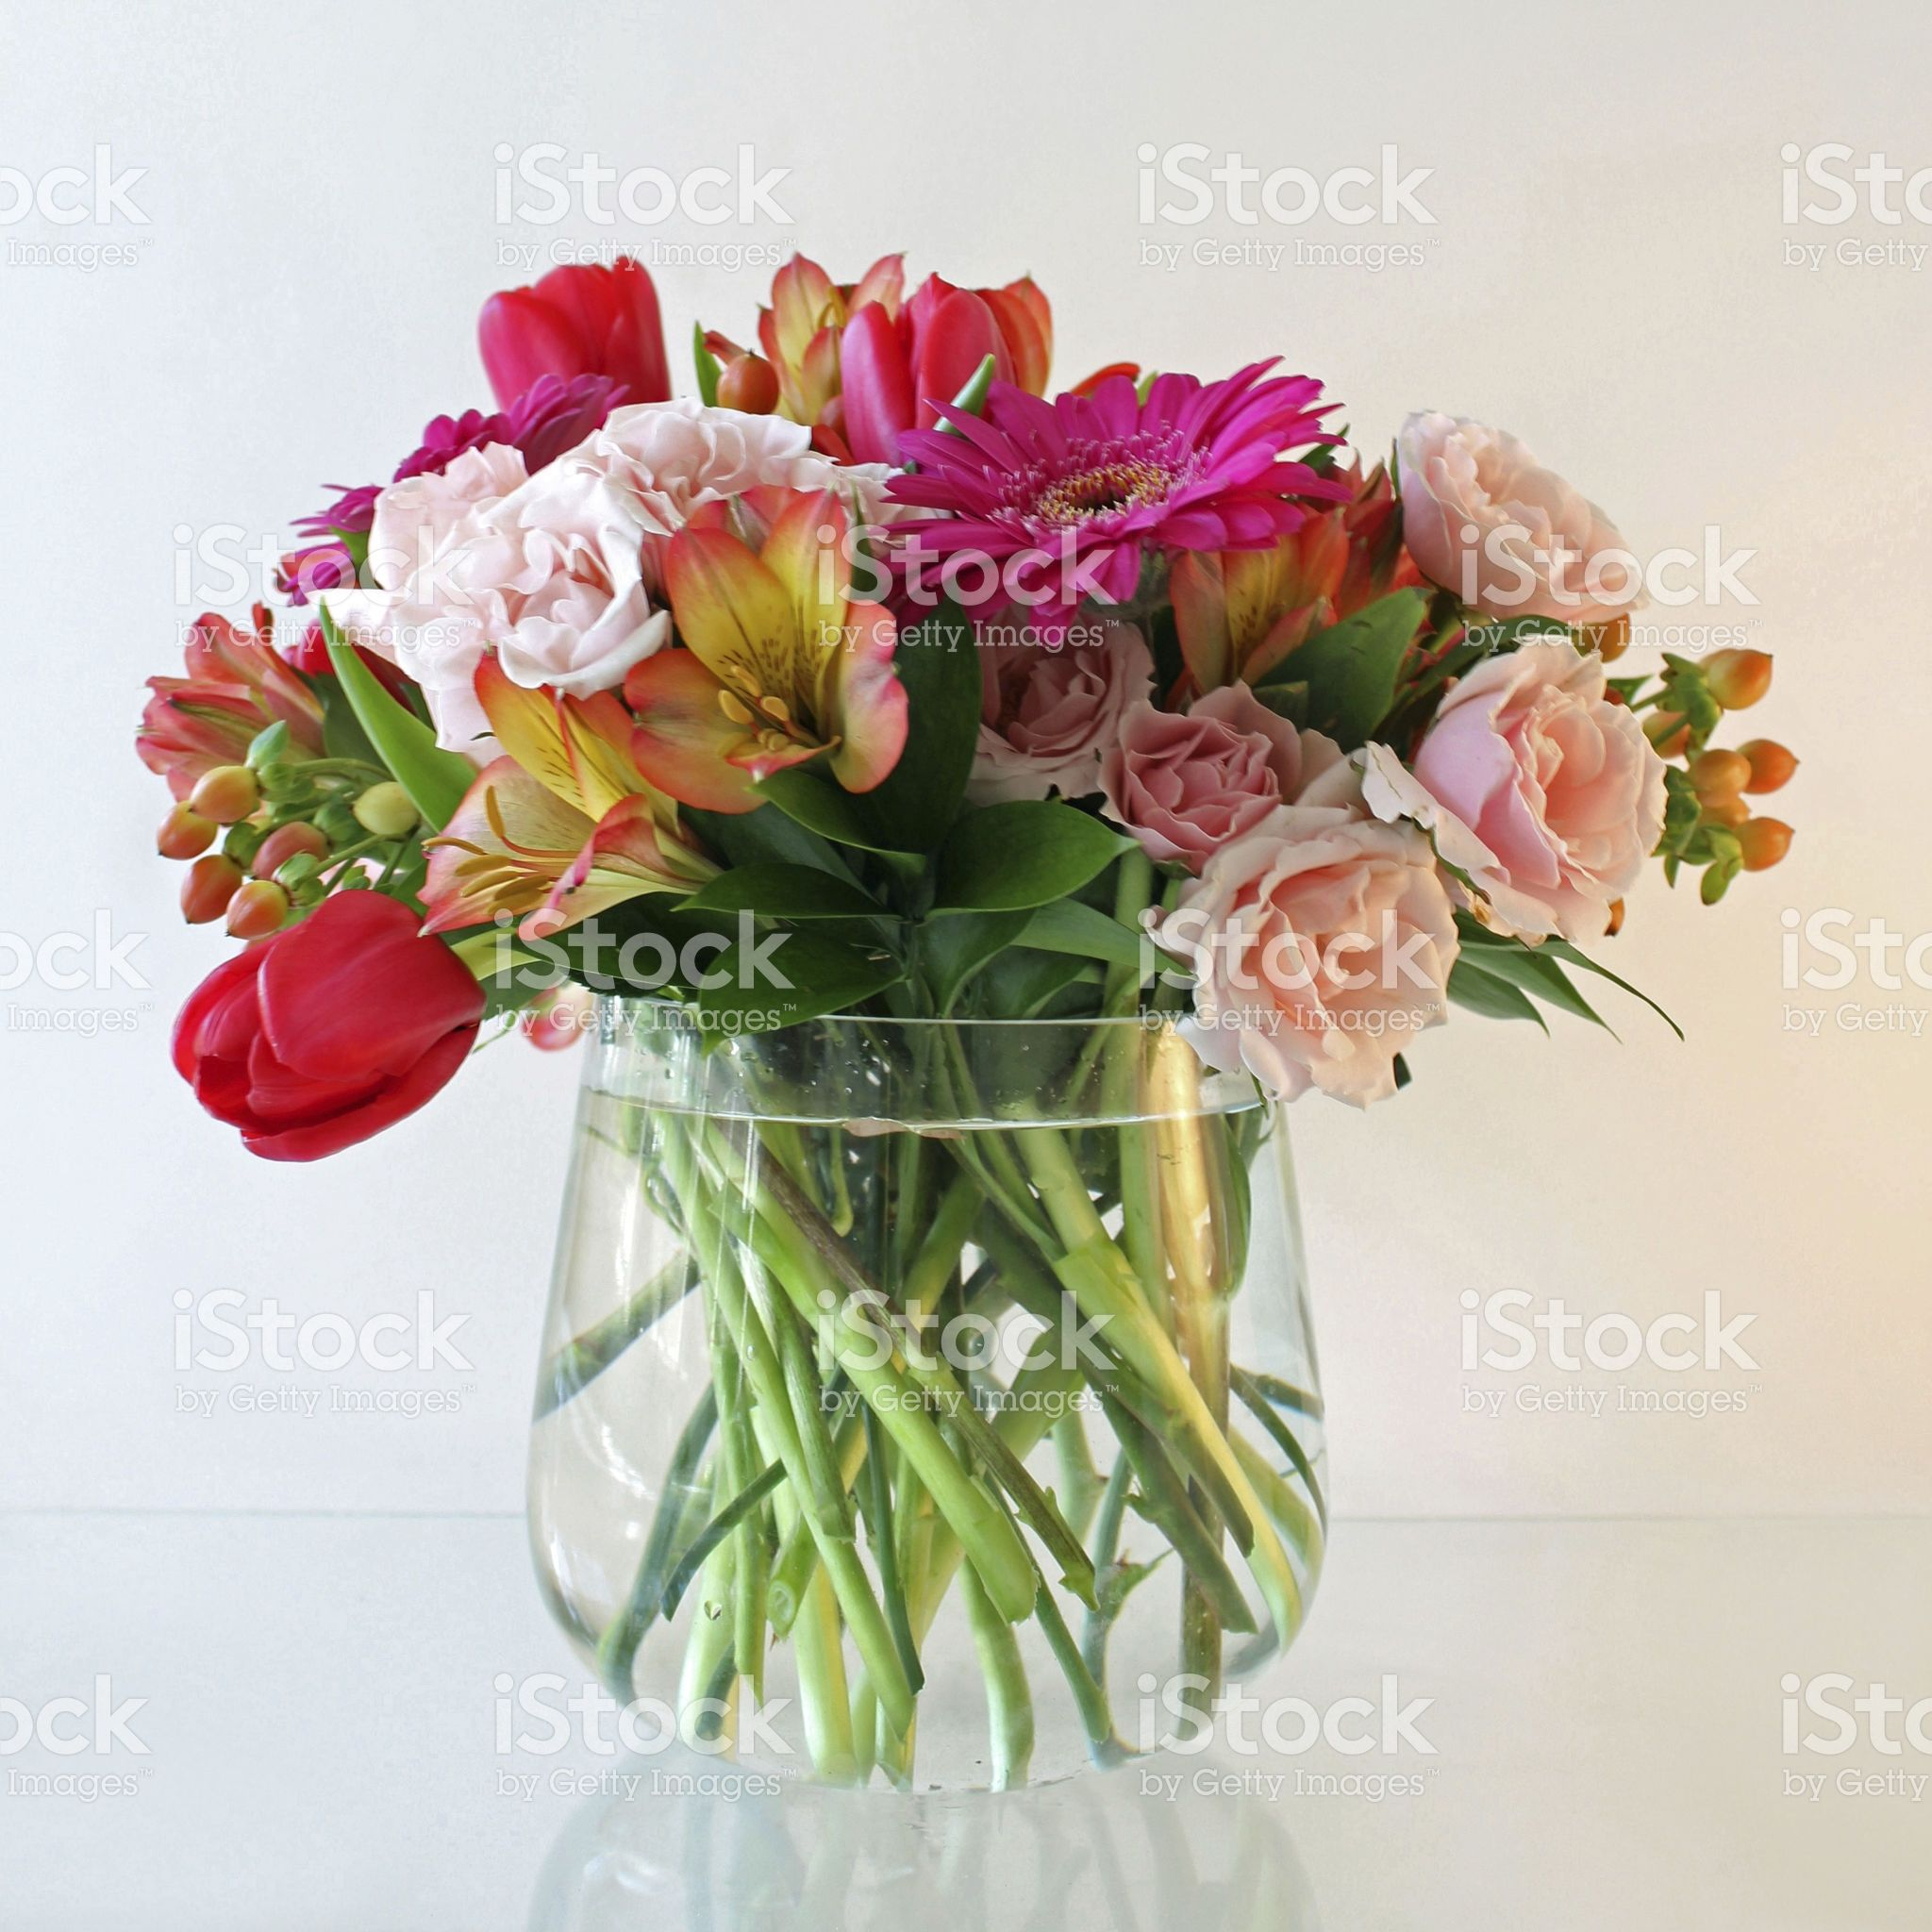 A Glass Vase With An Arrangement Of Pink Red And Orange Flowers